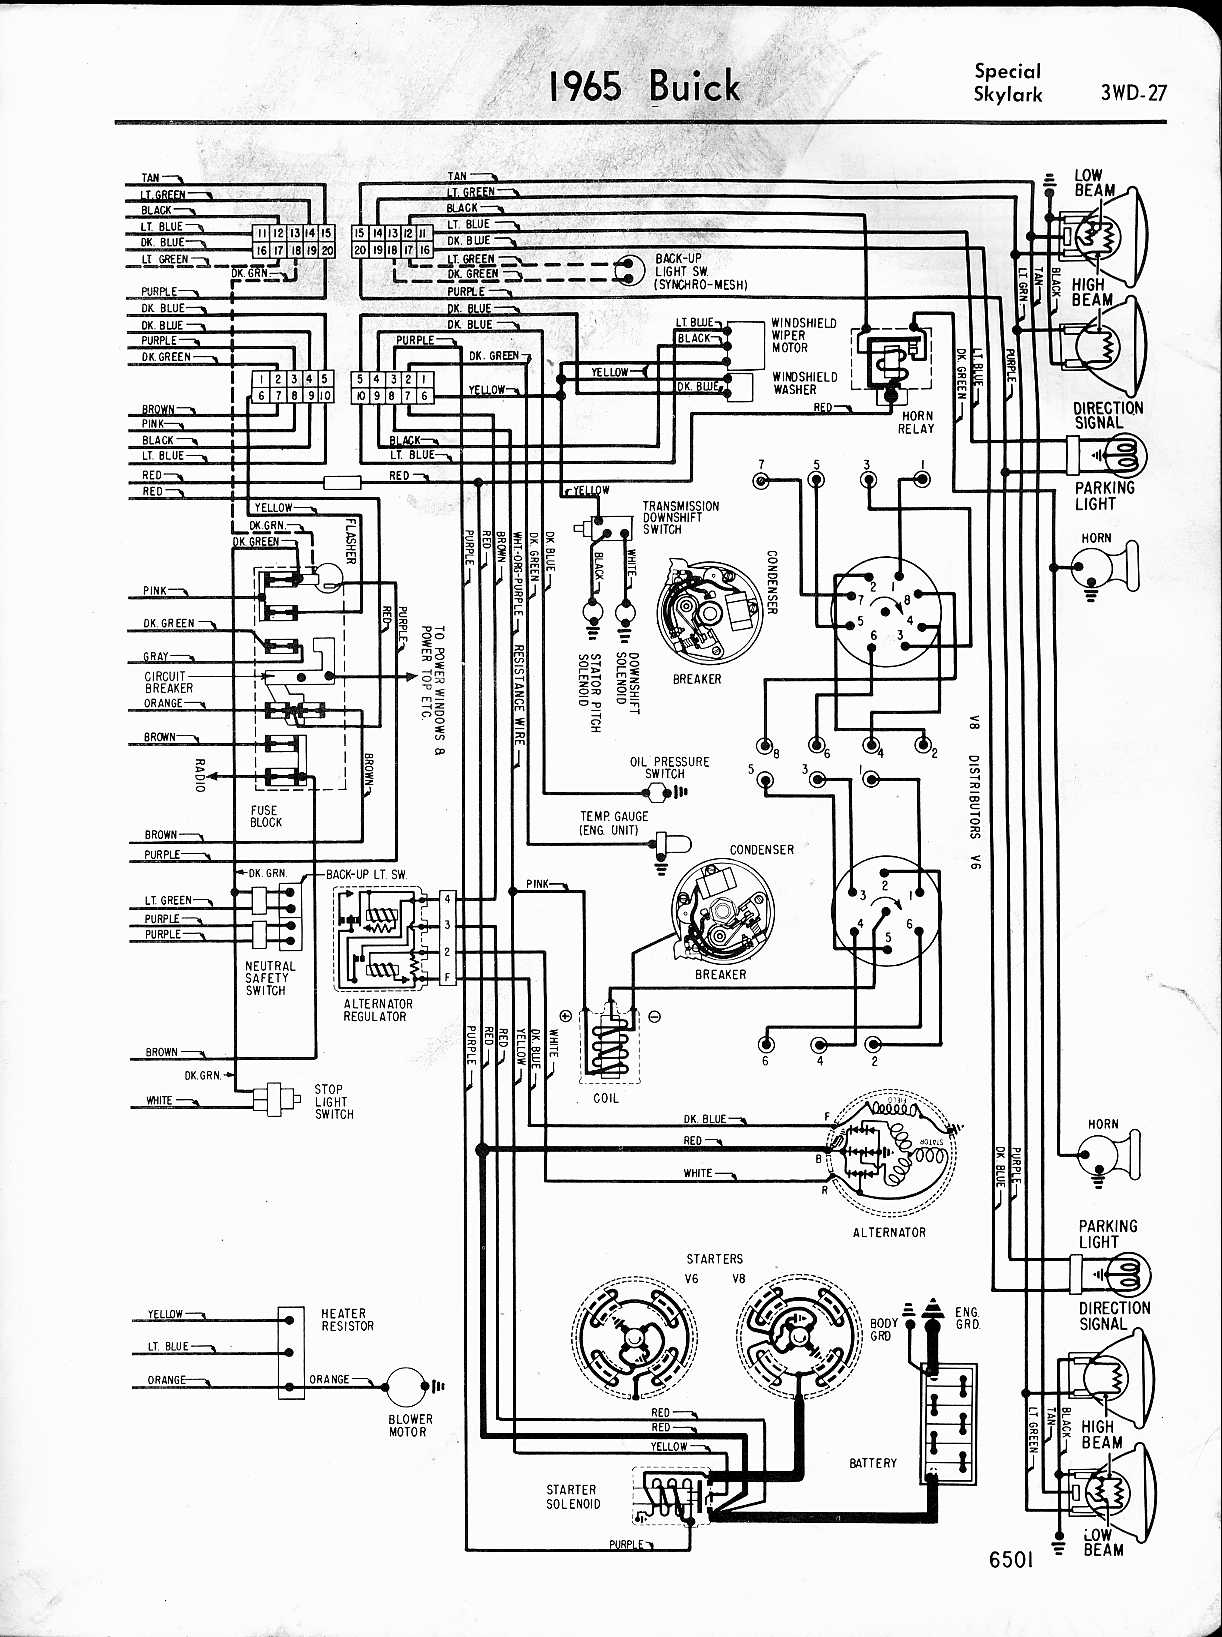 E1C4C 2003 Buick Regal Wiring Diagram | Digital Resources on buick regal coolant leak, buick regal fuel pump, buick regal brakes, buick reatta wiring diagram, buick regal water pump, buick regal lighting, buick enclave wiring diagram, buick stereo wiring diagram, buick regal power, buick rainier wiring diagram, buick regal radiator, buick regal radio, buick regal door panel removal, buick lacrosse wiring diagram, buick regal dash lights, buick regal spark plugs, buick regal firing order, buick regal engine diagram, buick century electrical diagrams, buick regal exhaust system,